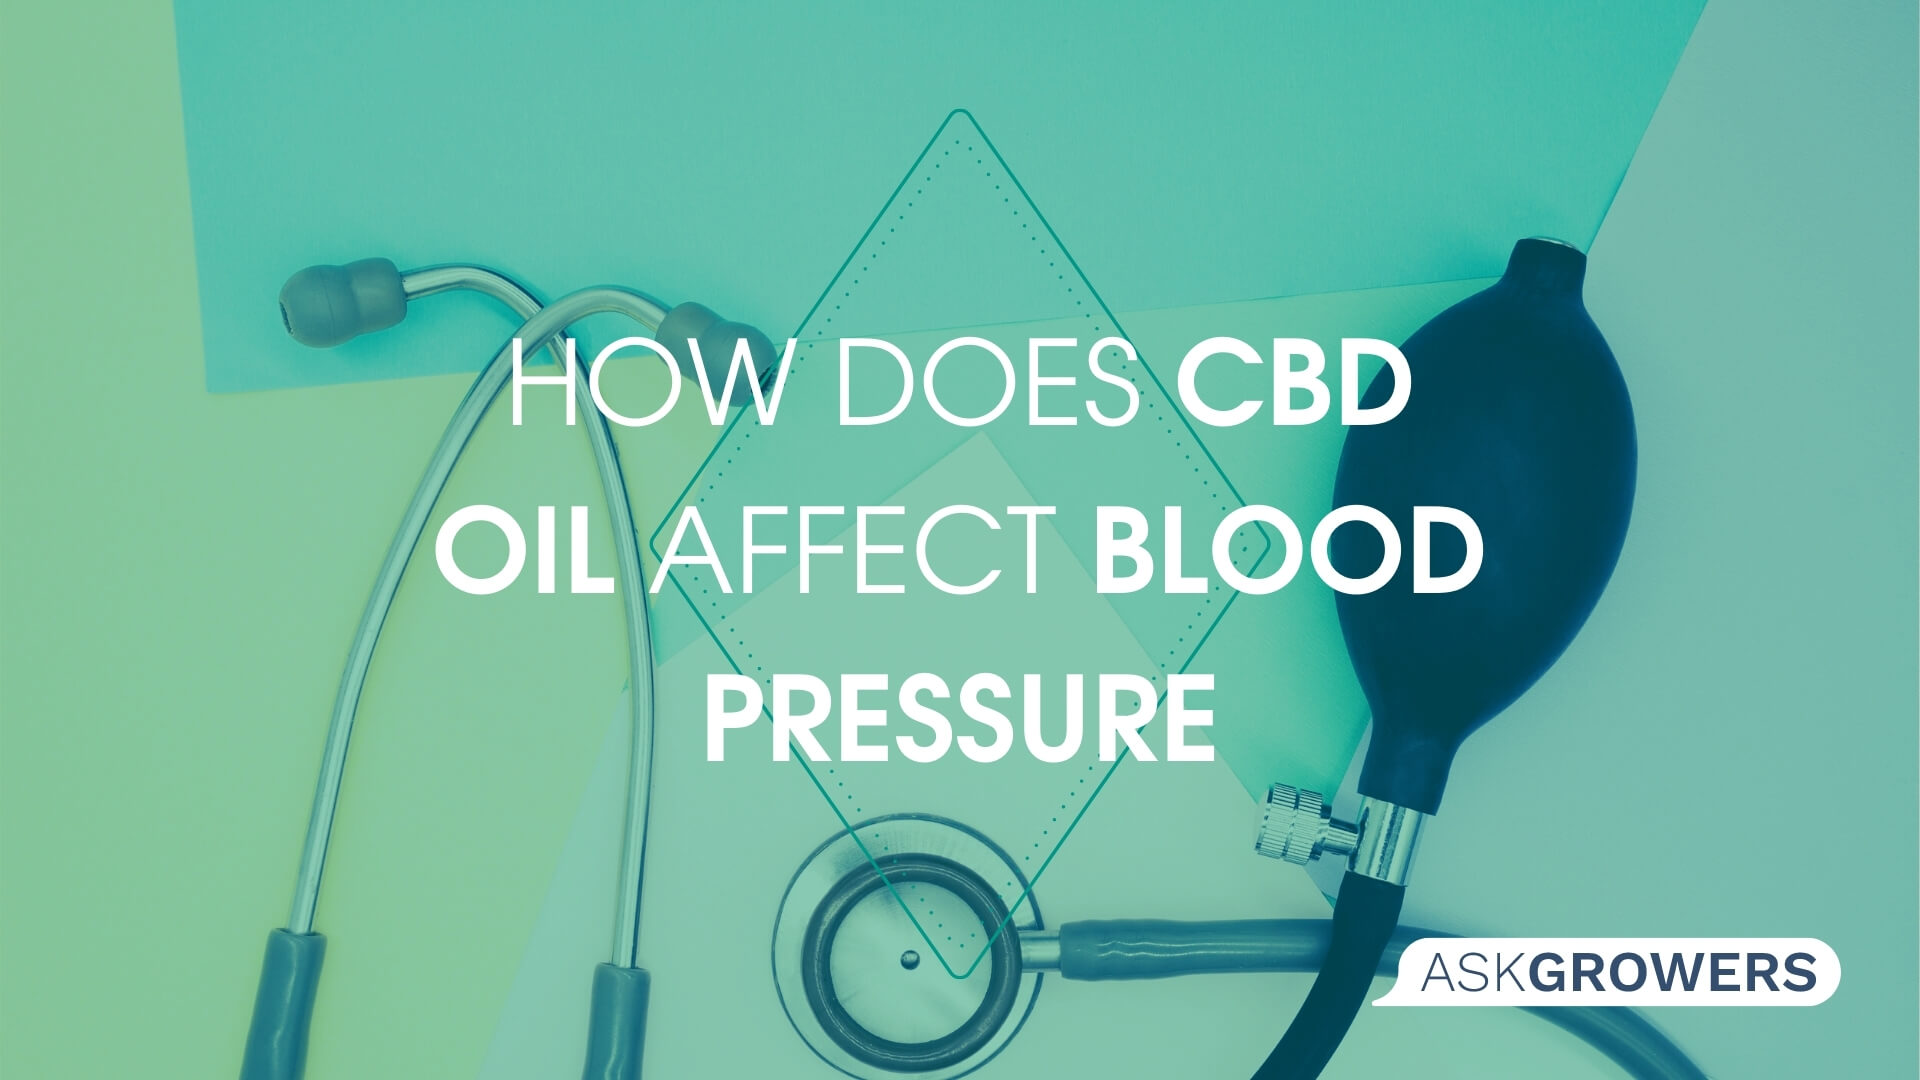 How Does CBD Oil Affect Blood Pressure?, AskGrowers